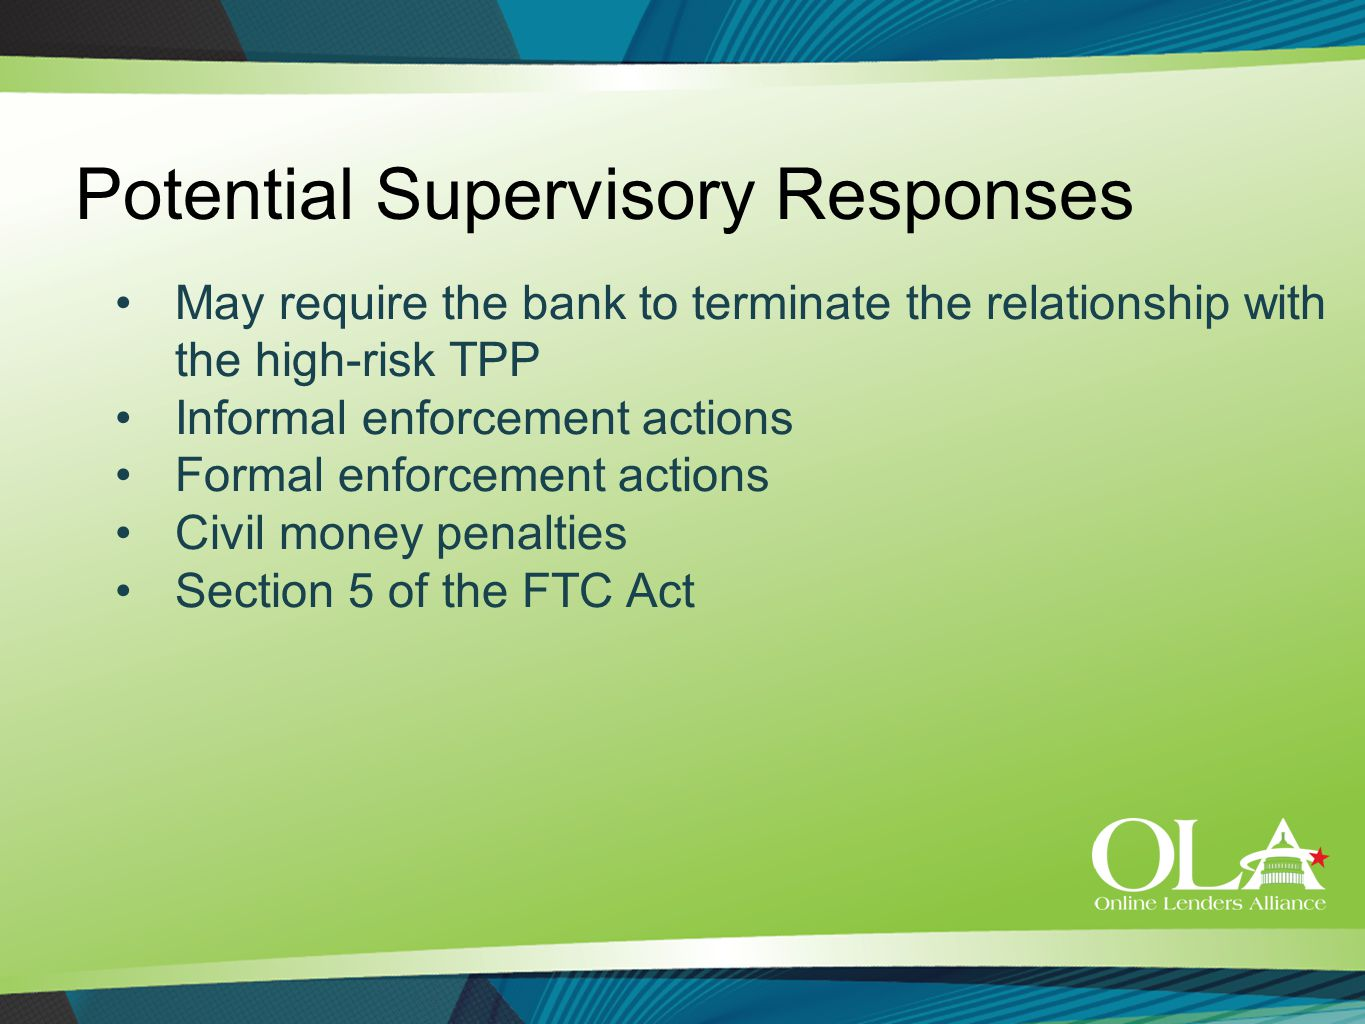 Potential Supervisory Responses May require the bank to terminate the relationship with the high-risk TPP Informal enforcement actions Formal enforcem